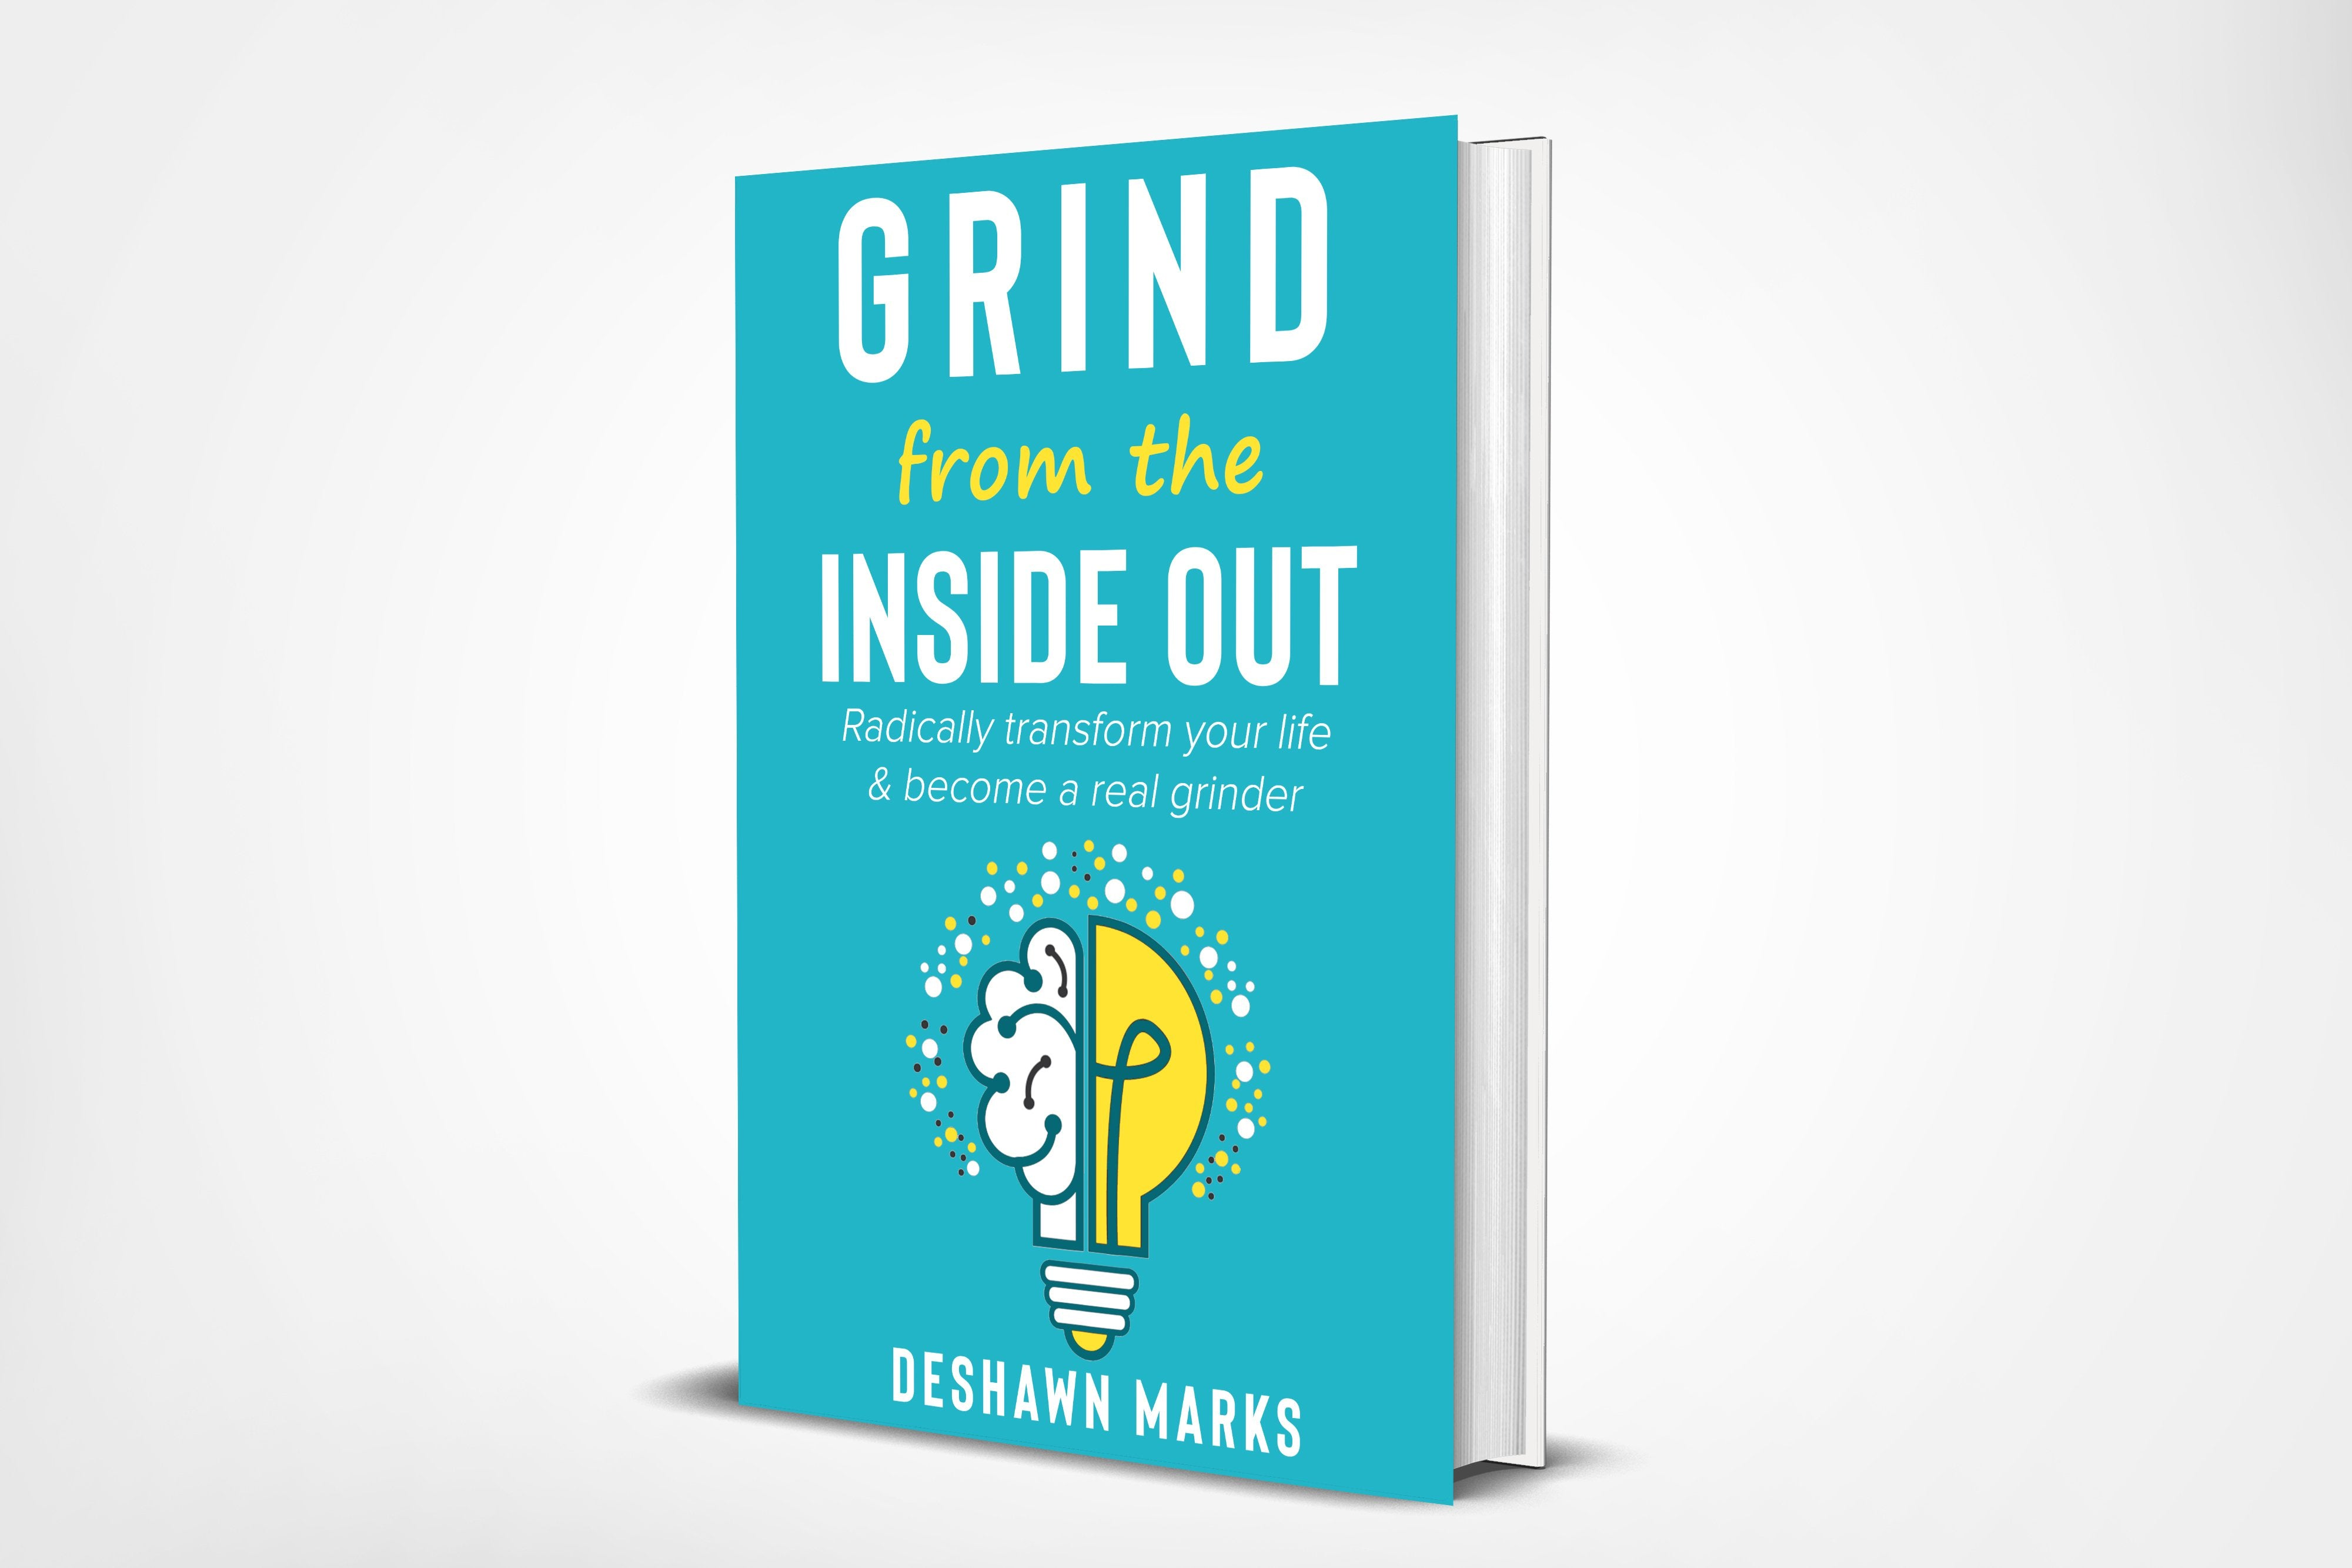 An image of Grind From the Inside Out